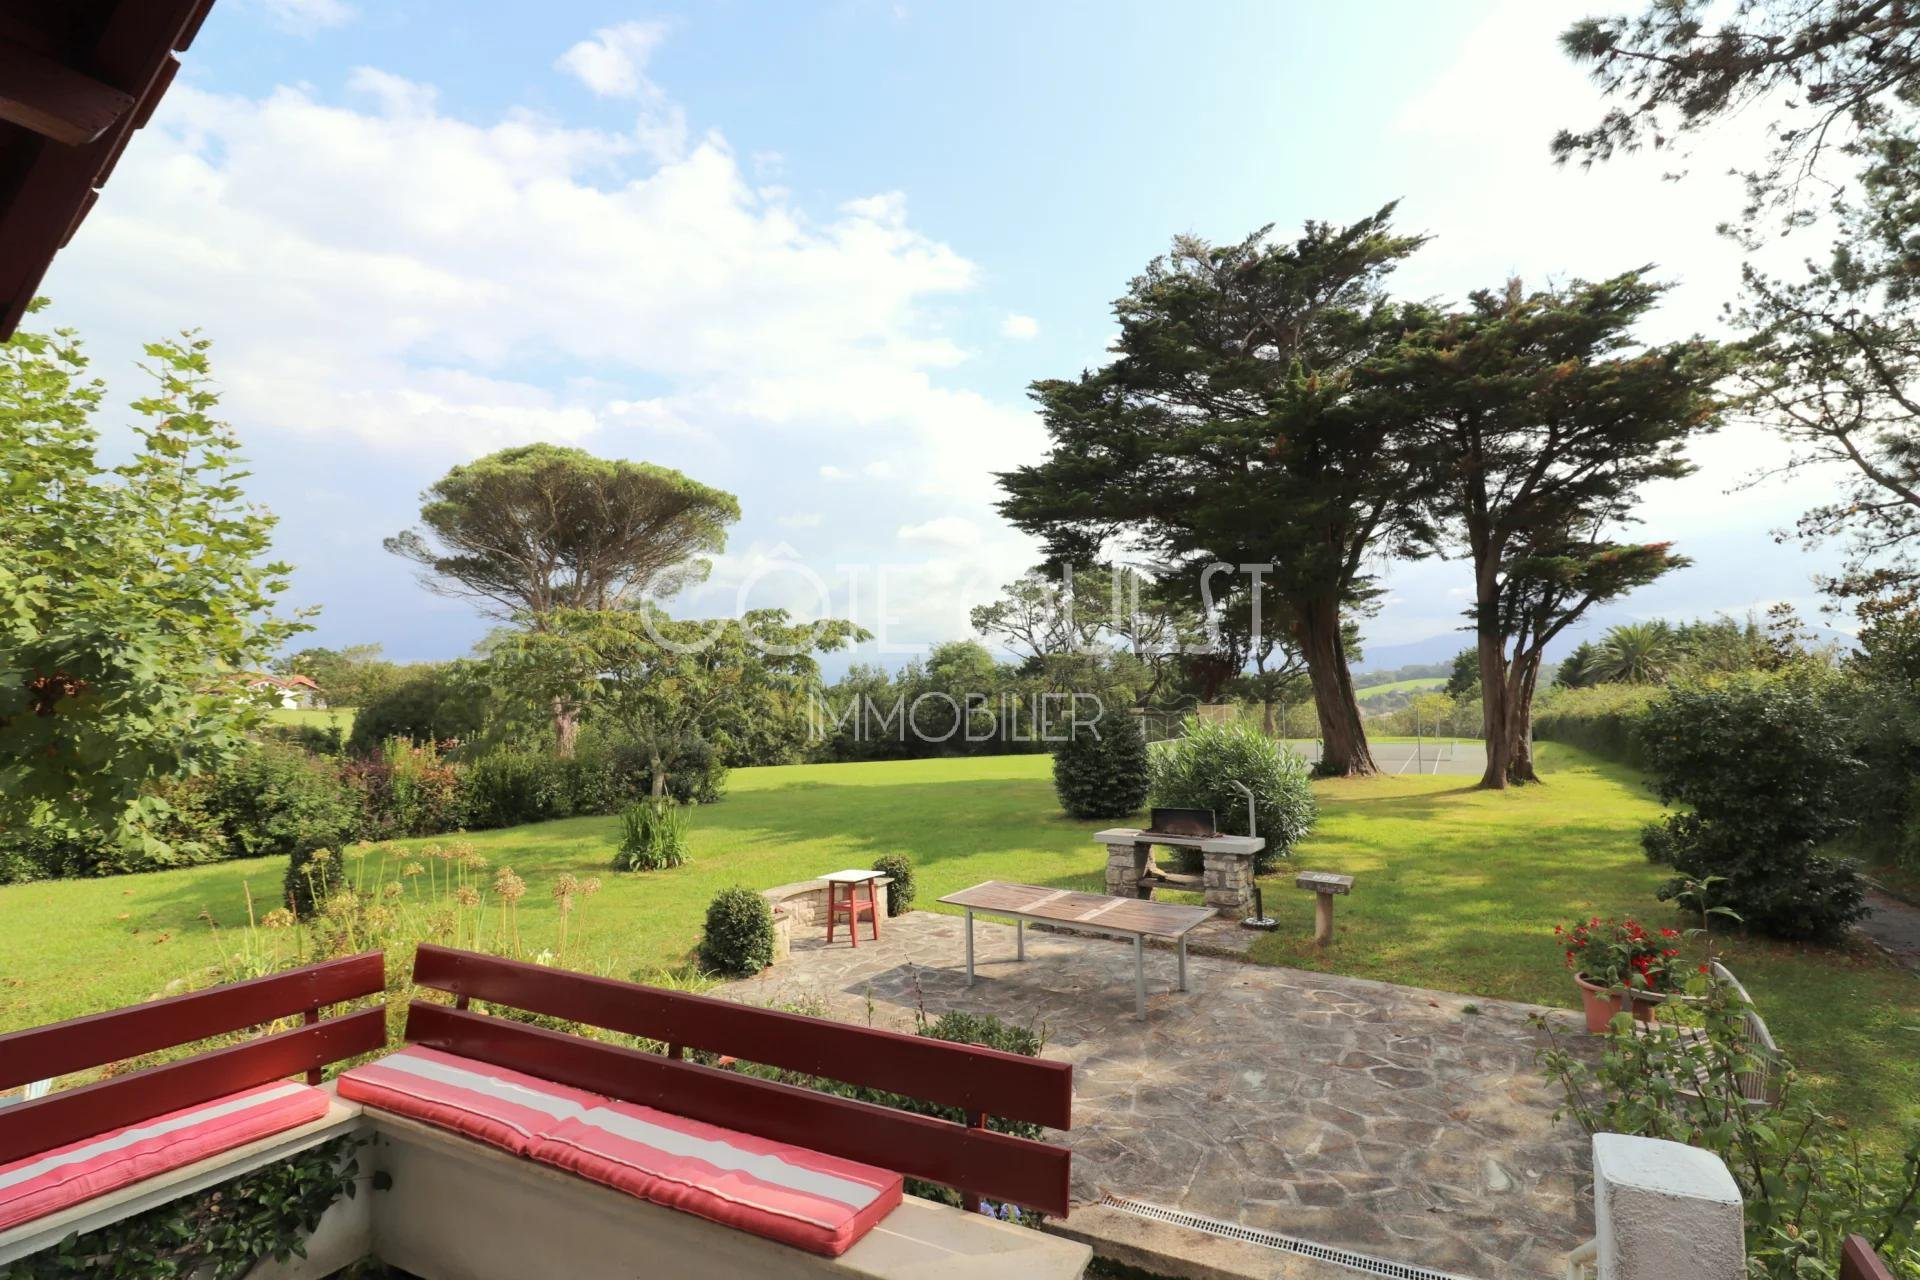 A PROPERTY WITH ANNEXES ENJOYING AN OCEAN VIEW